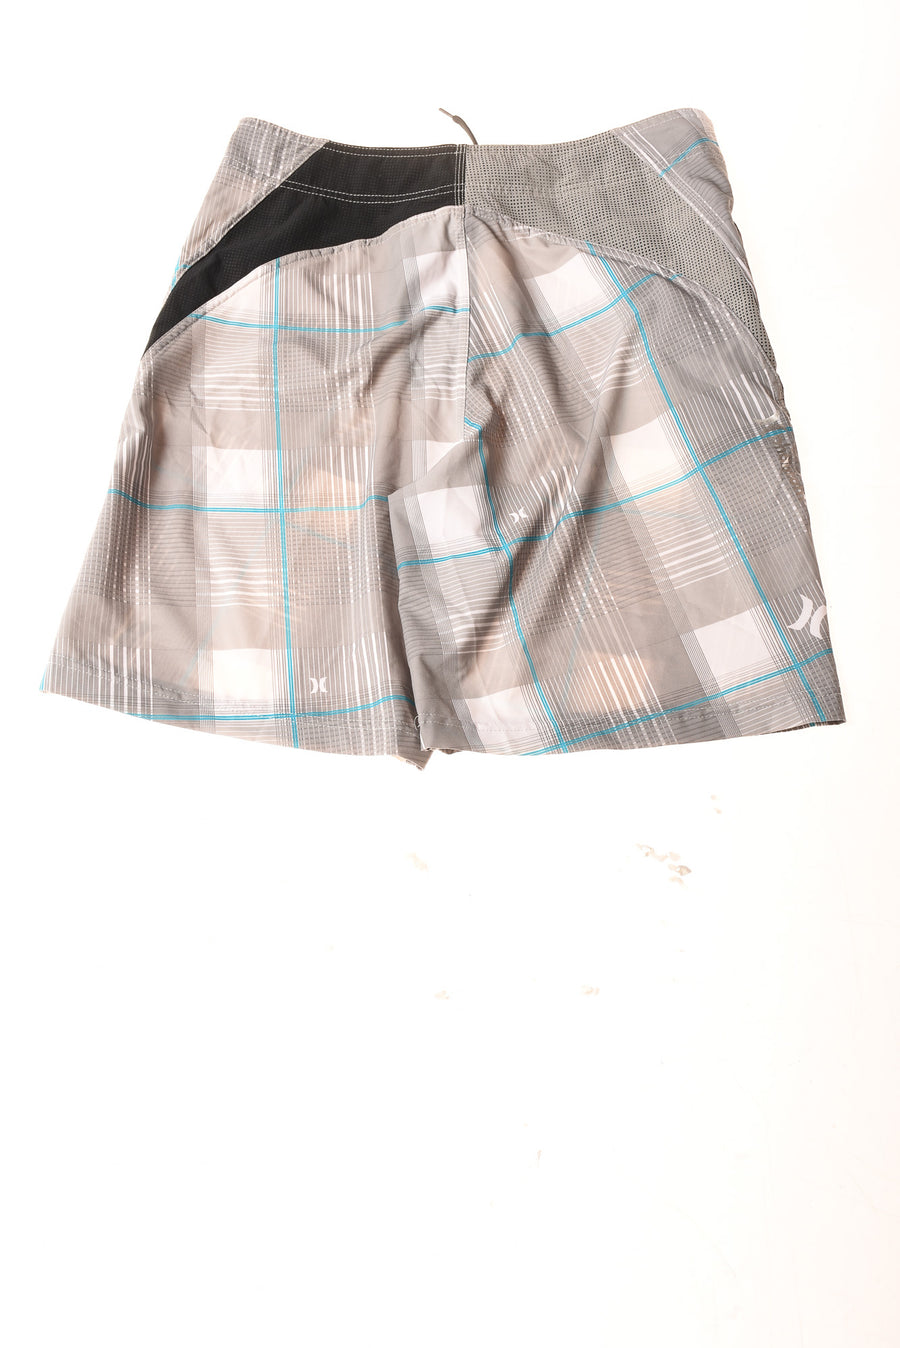 USED Hurley Men's Shorts 32 Gray & White / Plaid